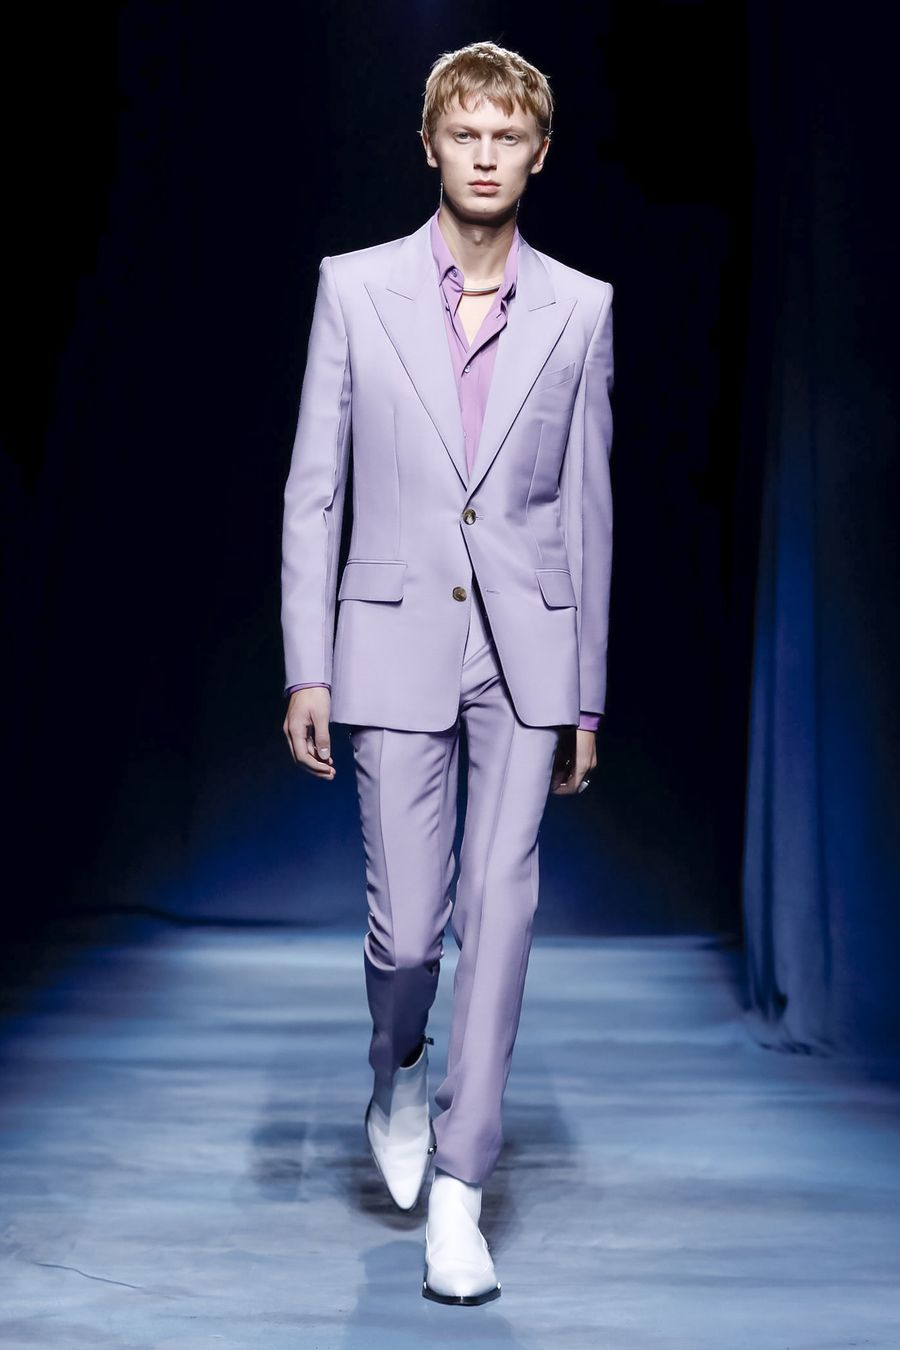 Givenchy SS19 menswear Clare Waight Keller lavender suit Paris fashion week